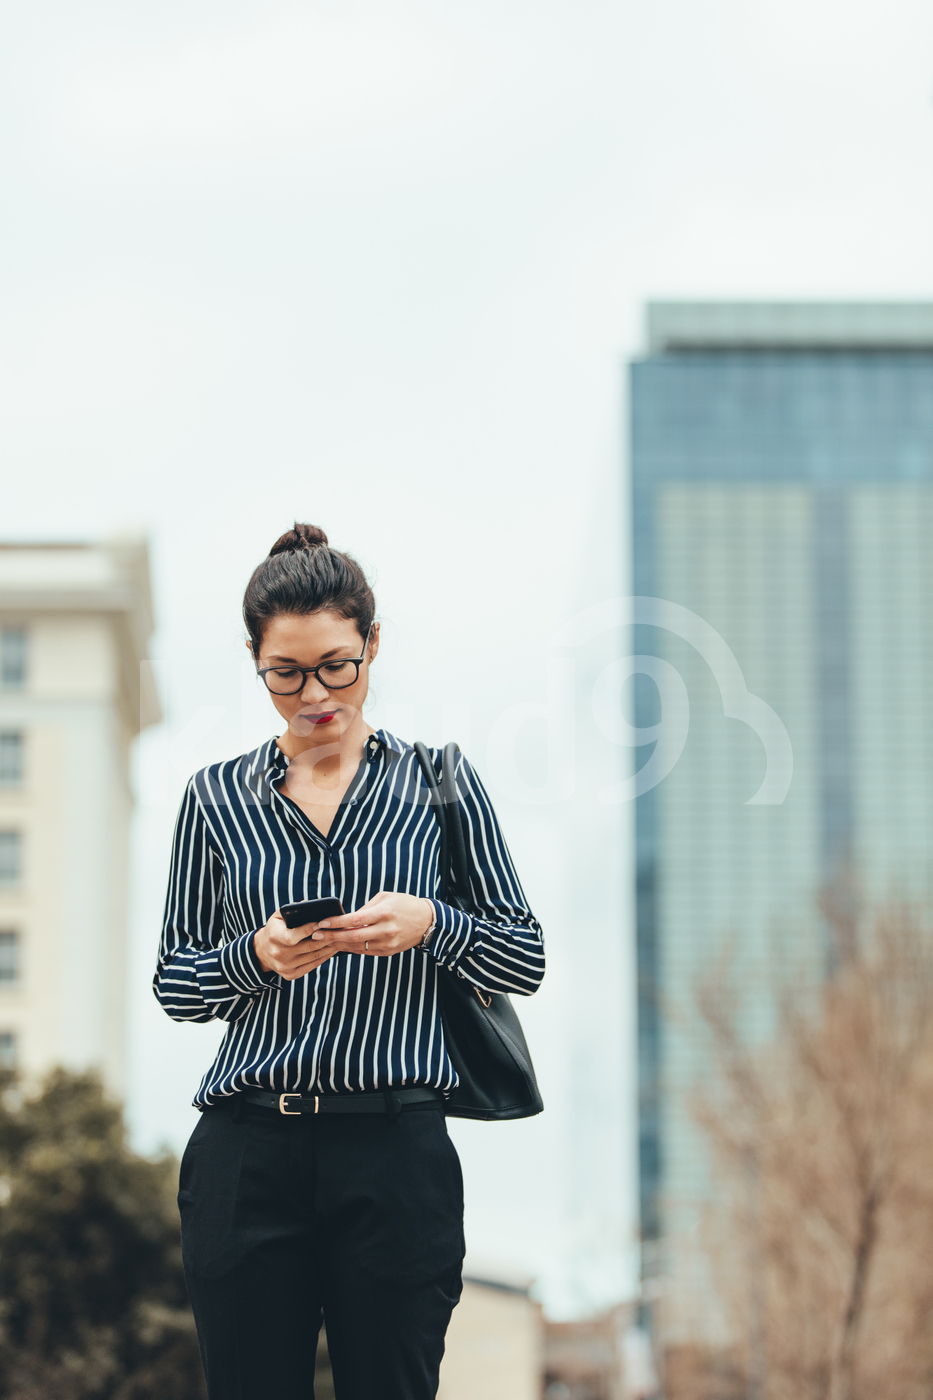 Businesswoman walking outdoors and using cellphone